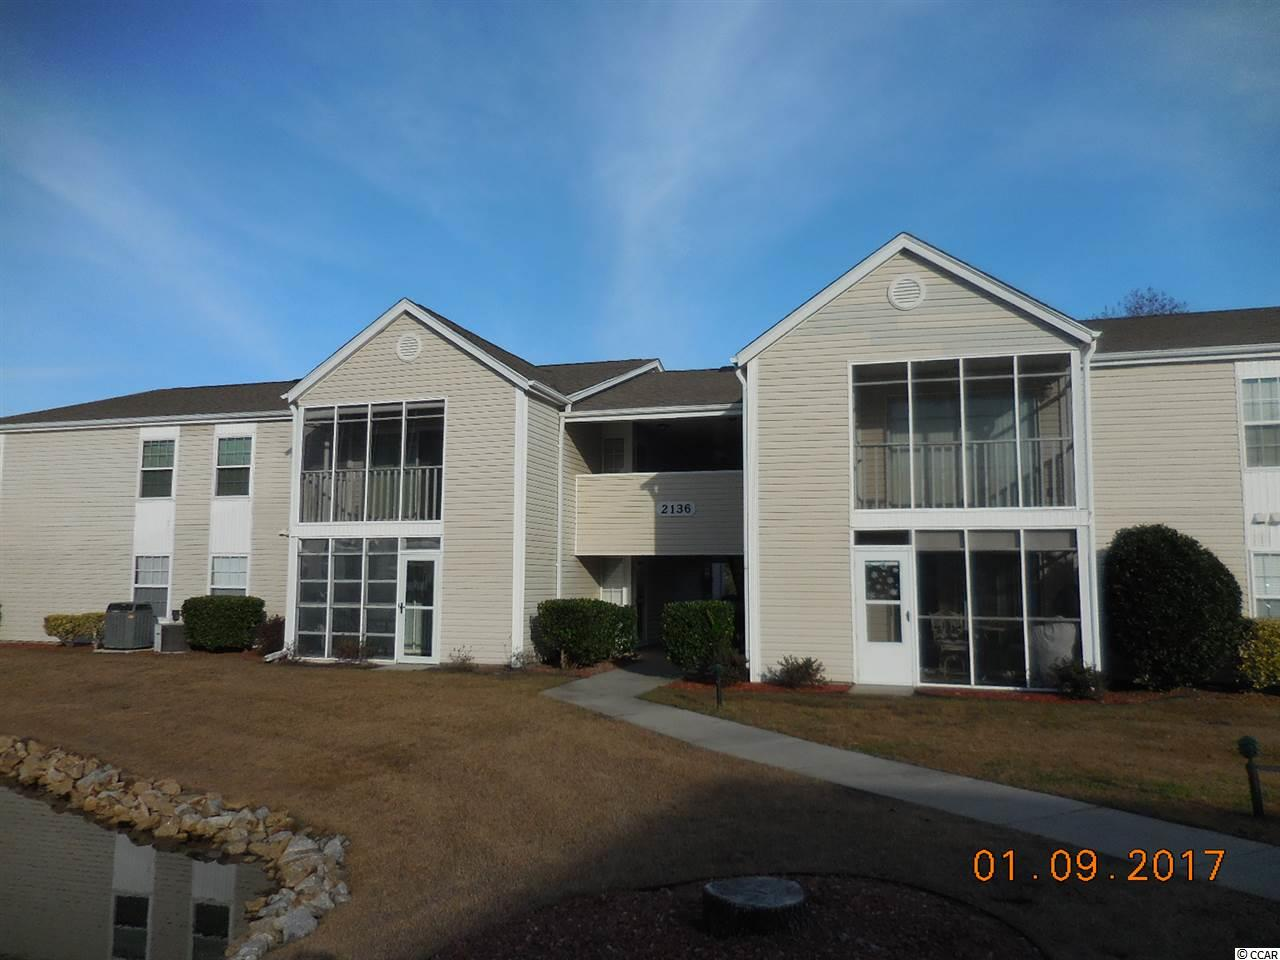 2136-H Clearwater H, Surfside Beach, SC 29575